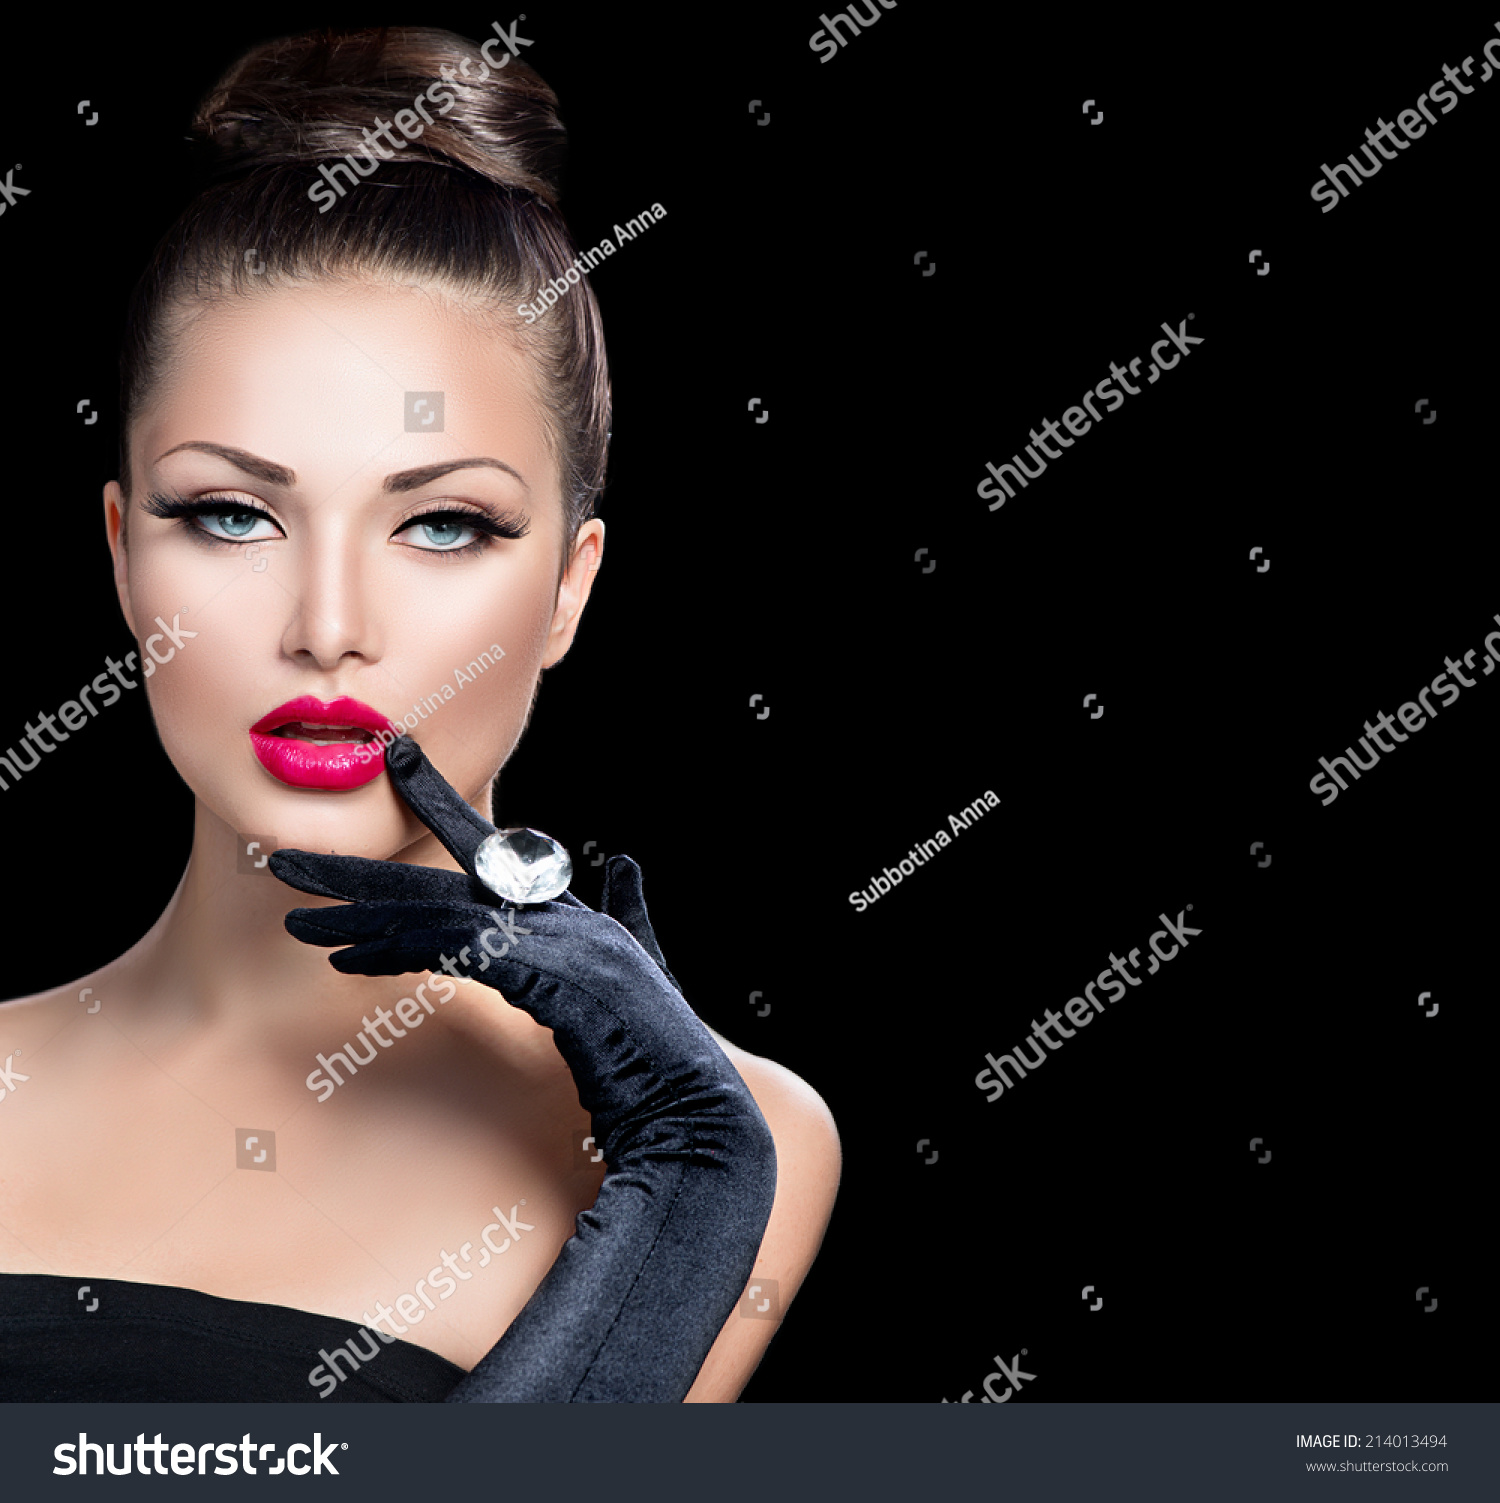 Beauty Glamur: Beauty Fashion Glamour Girl Portrait Over Stock Photo